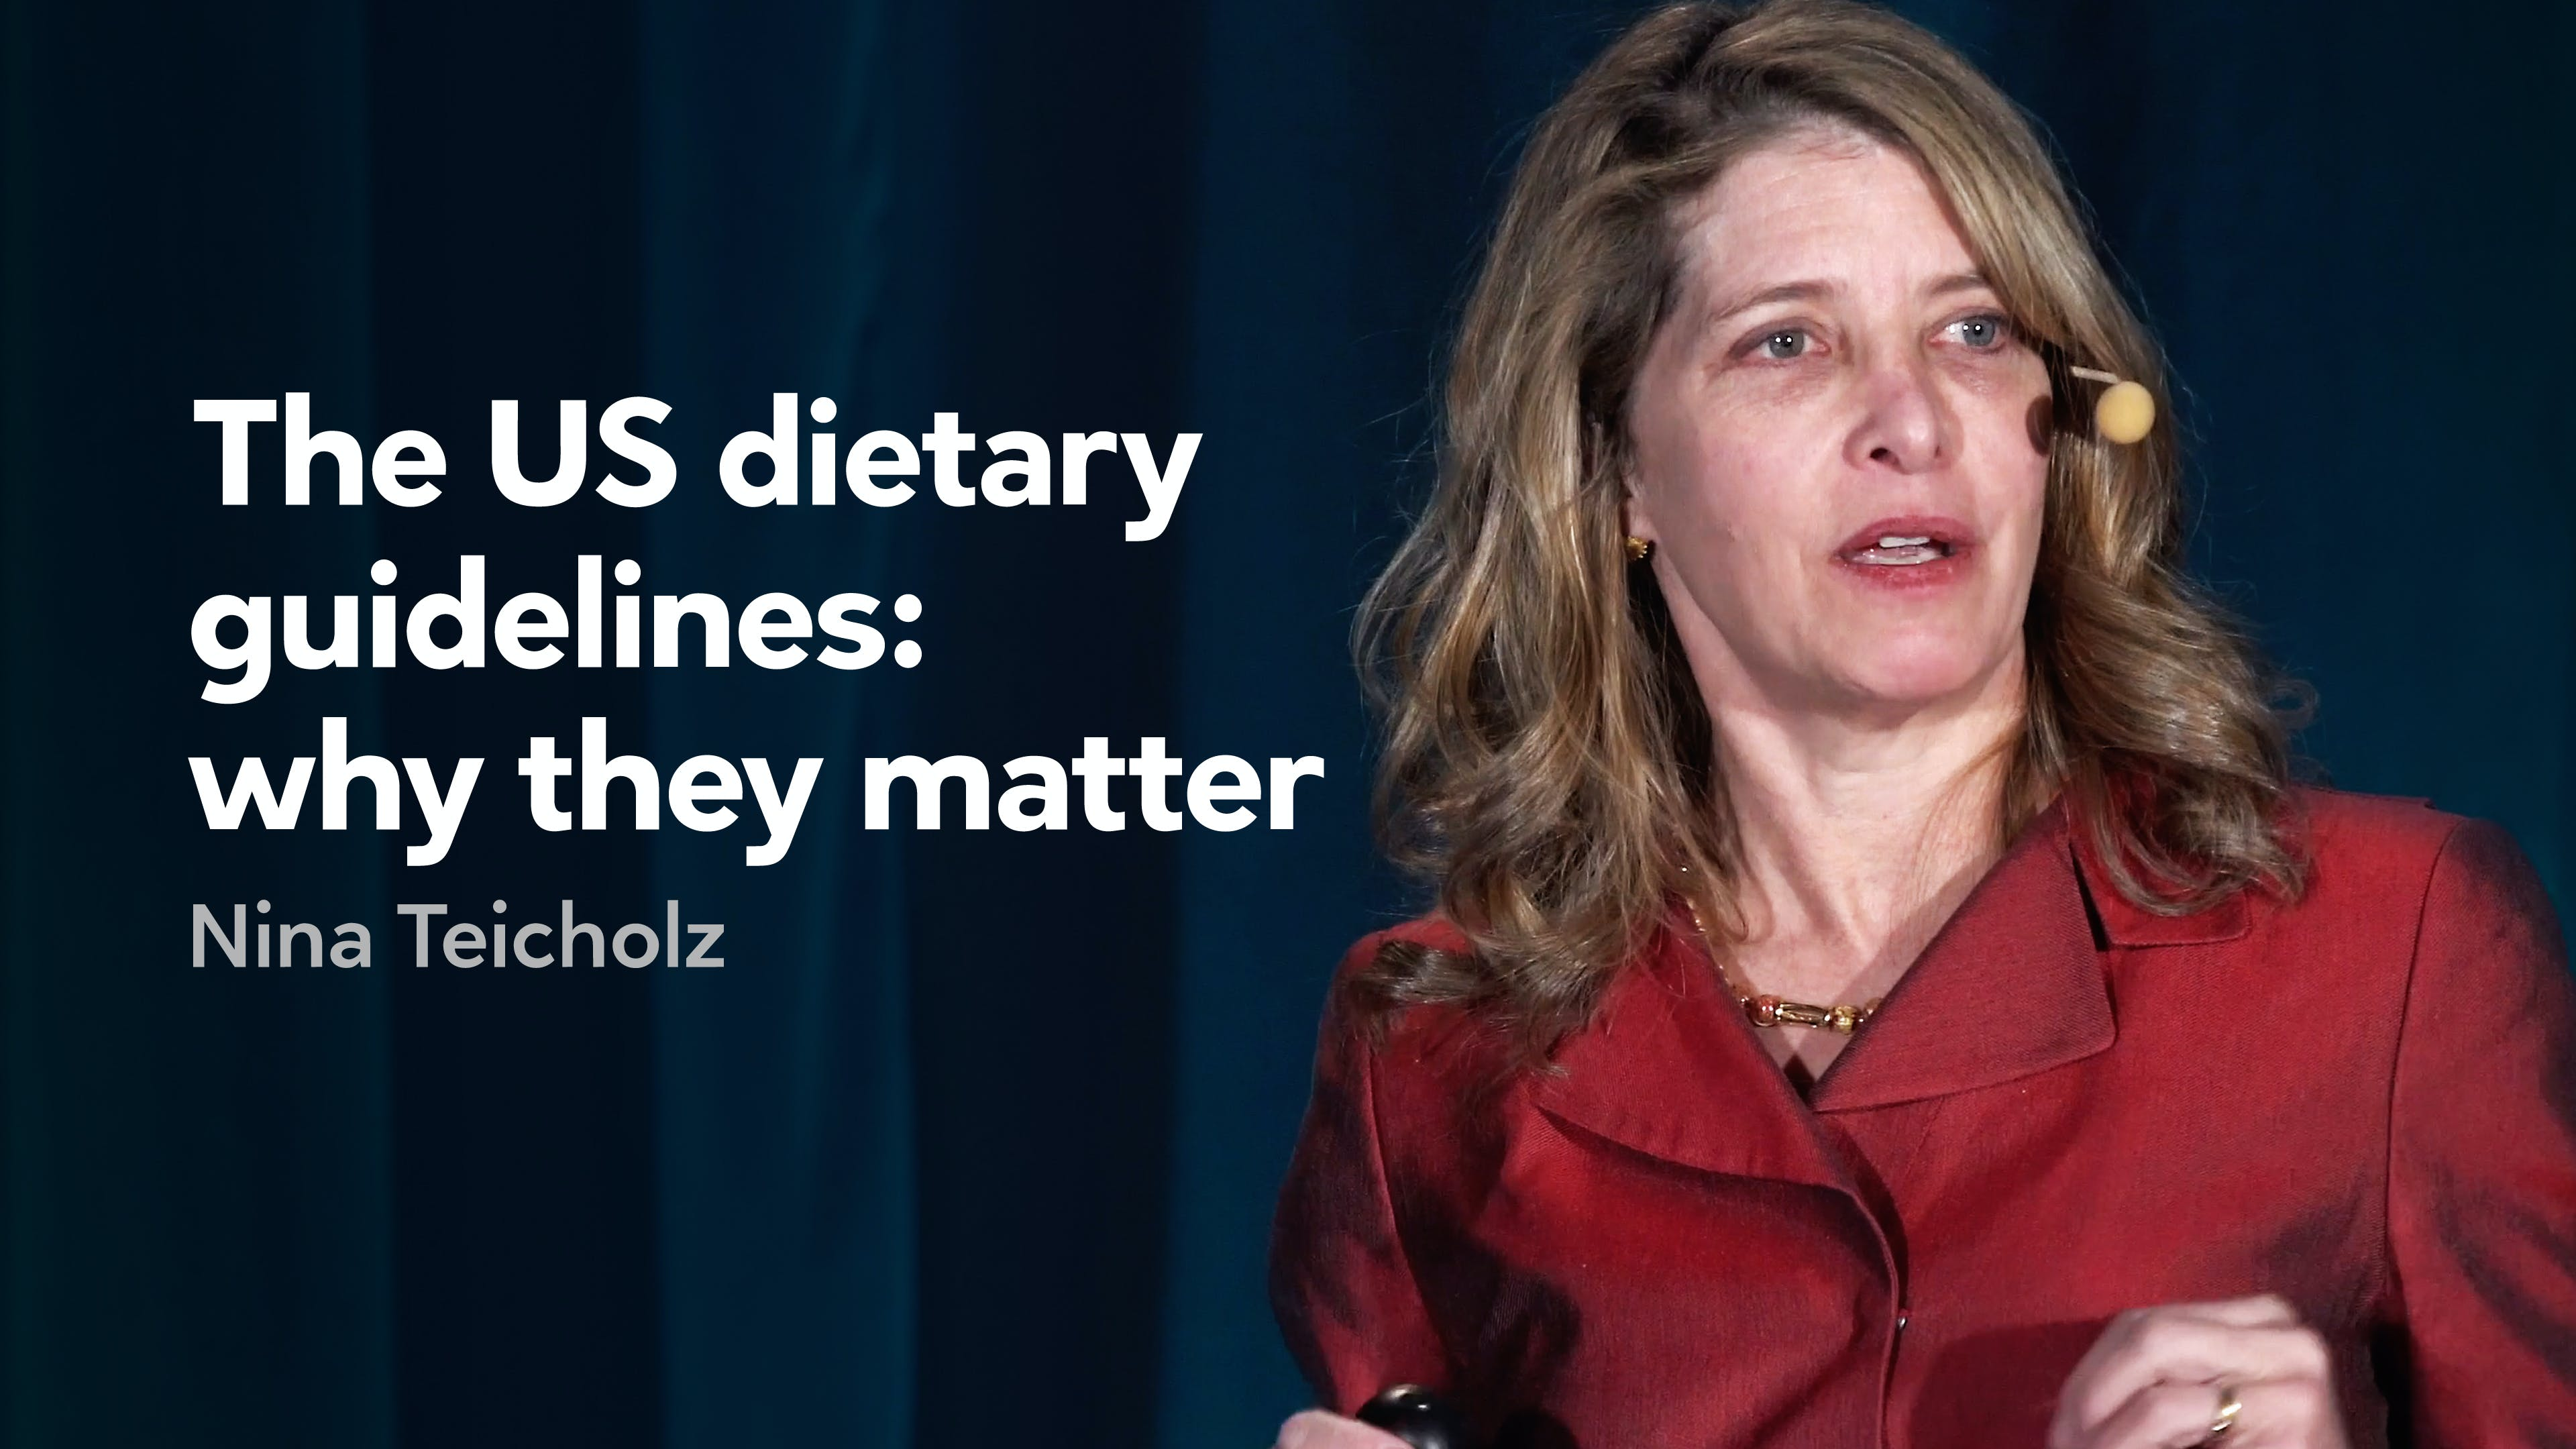 The US dietary guidelines: why they matter